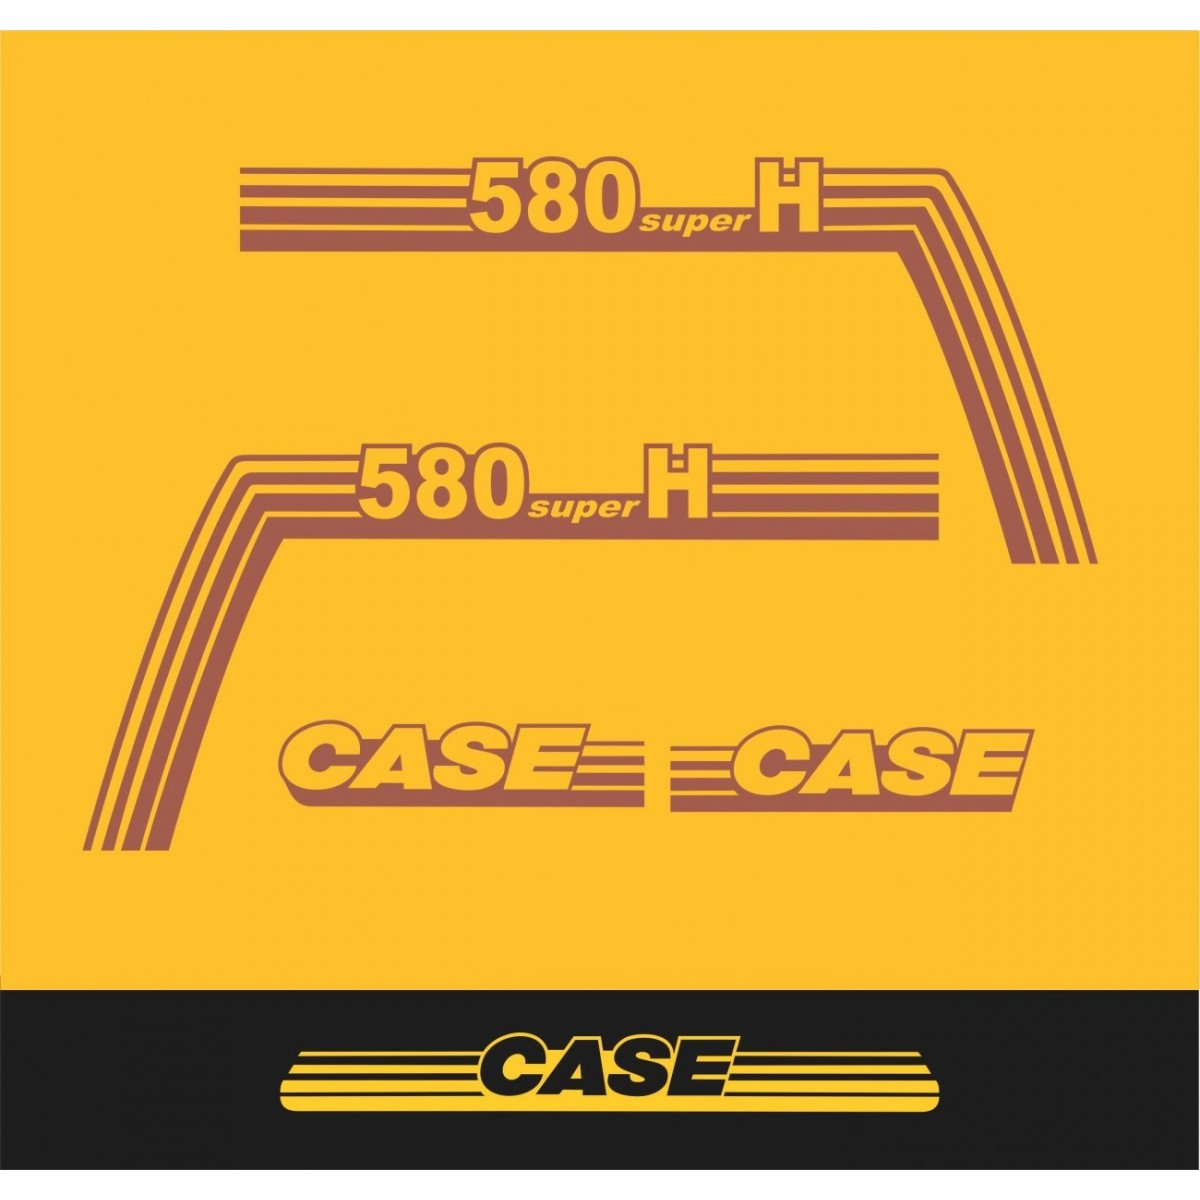 Kit Adesivos Case 580 Super H - Decalx